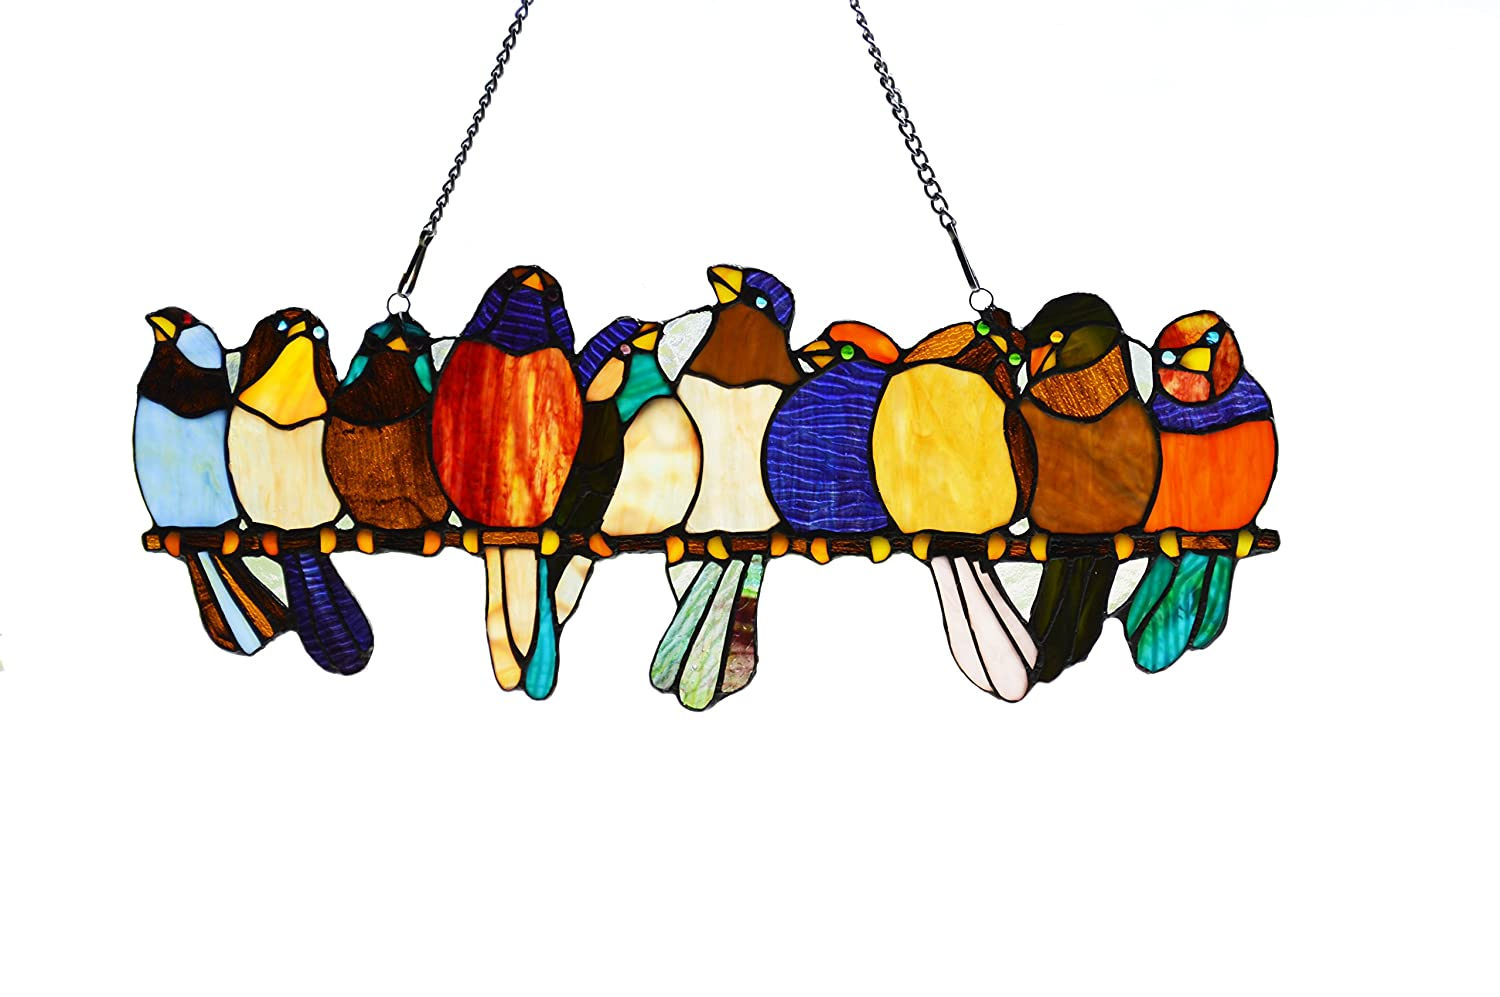 Dorable Birds On A Wire Pixar Collection - Wiring Schematics and ...